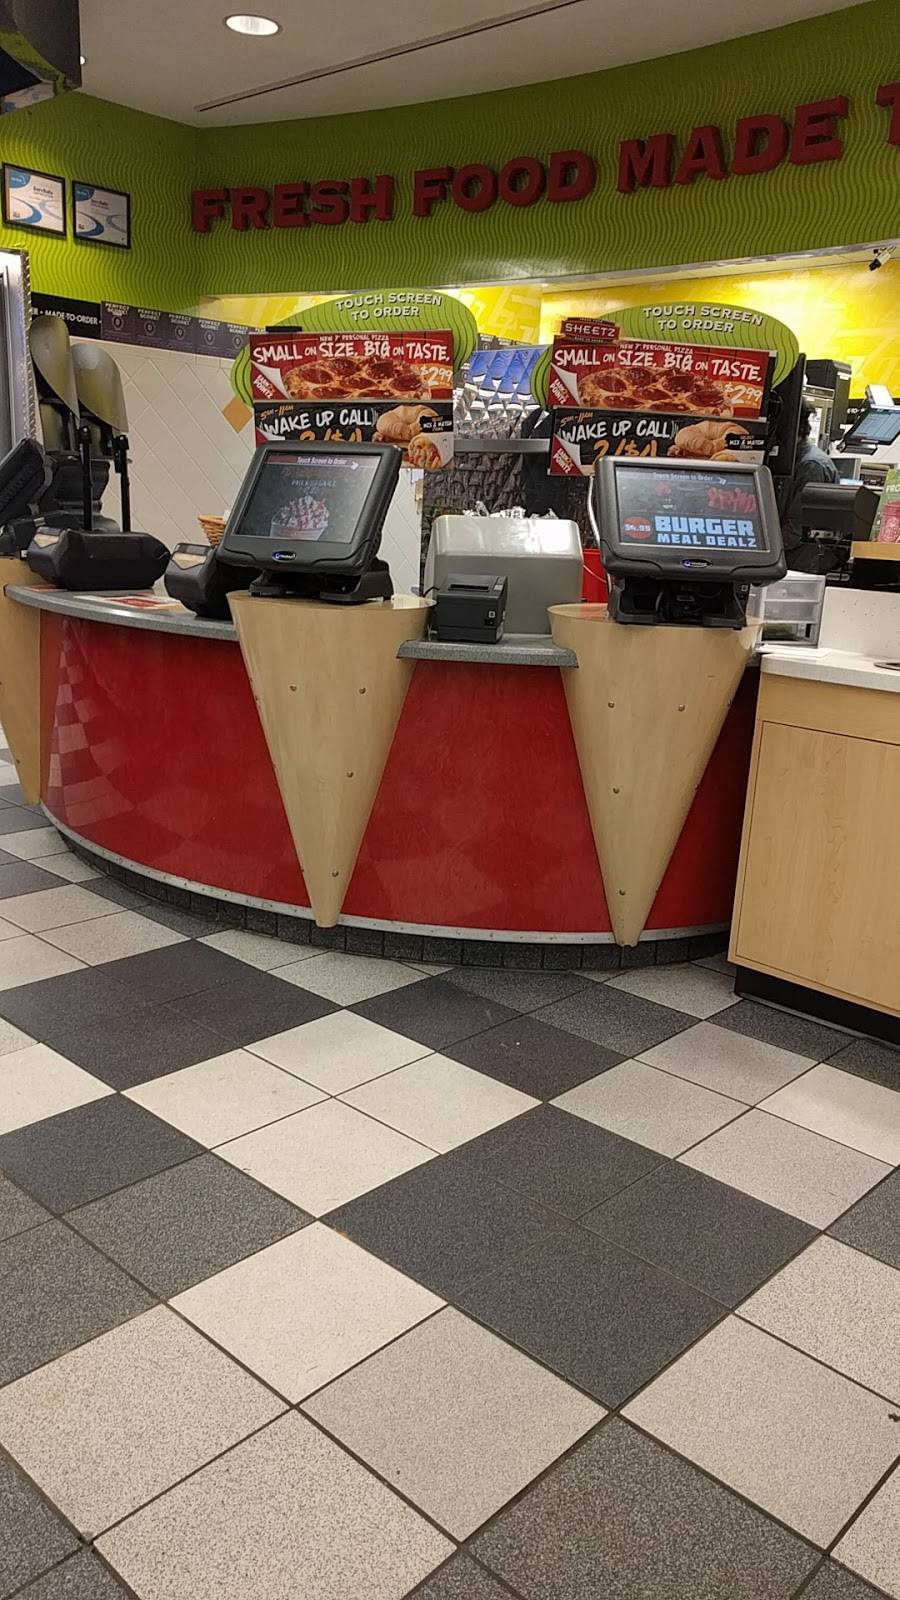 Sheetz #268 | cafe | 3200 Cape Horn Rd, Red Lion, PA 17356, USA | 7172468144 OR +1 717-246-8144